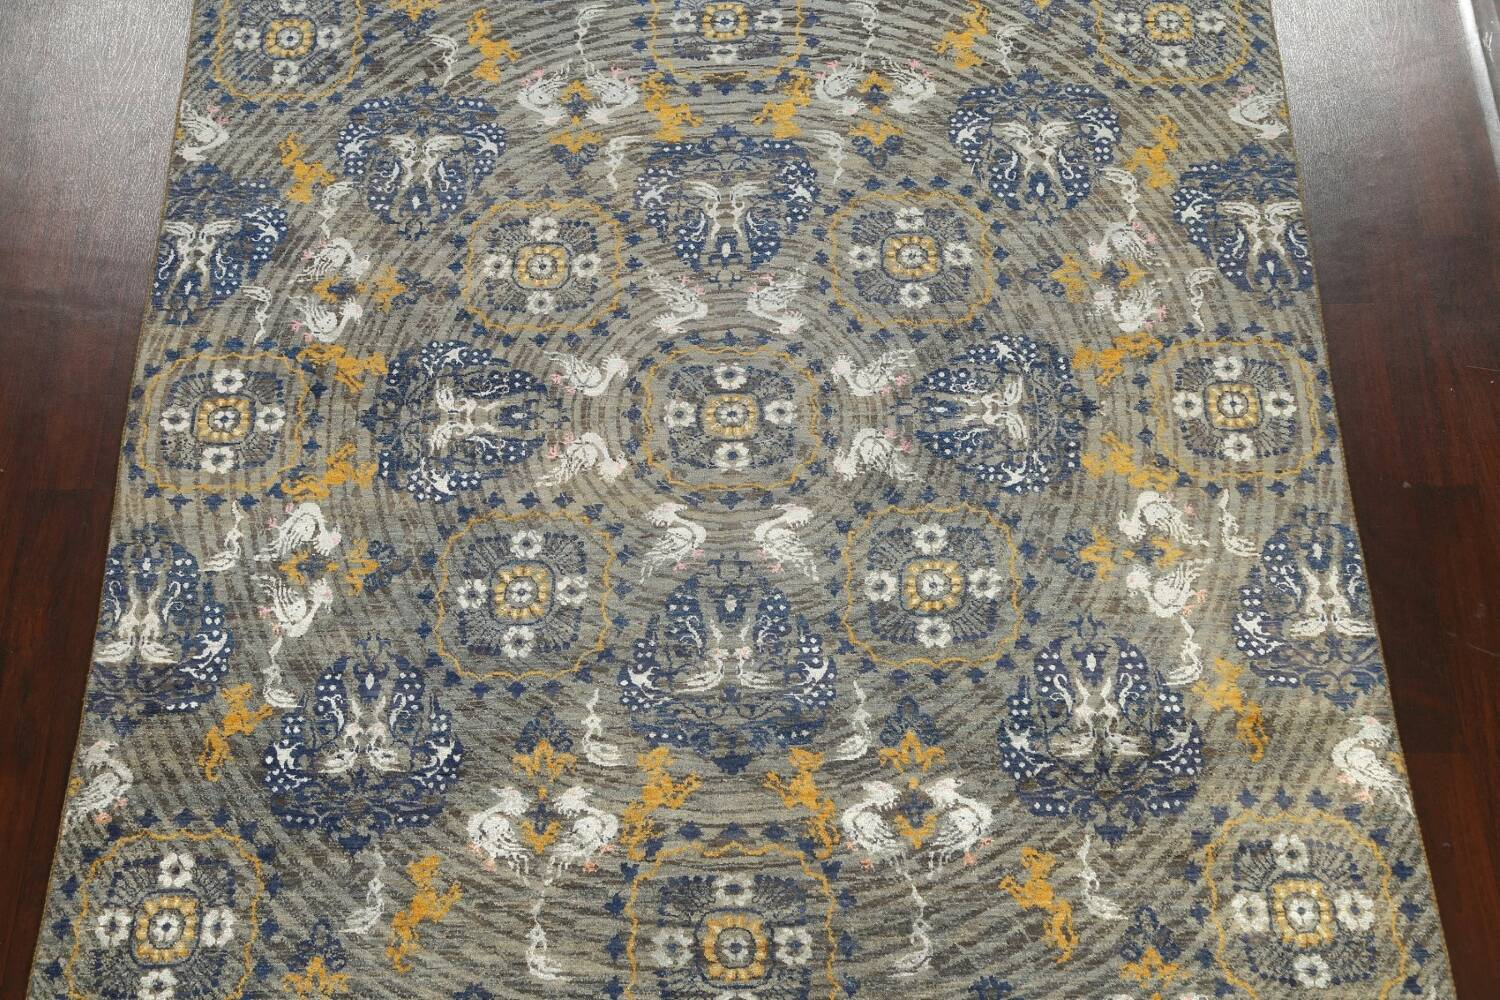 Vegetable Dye Animal Pictorial Abstract Oriental Area Rug 8x11 image 3